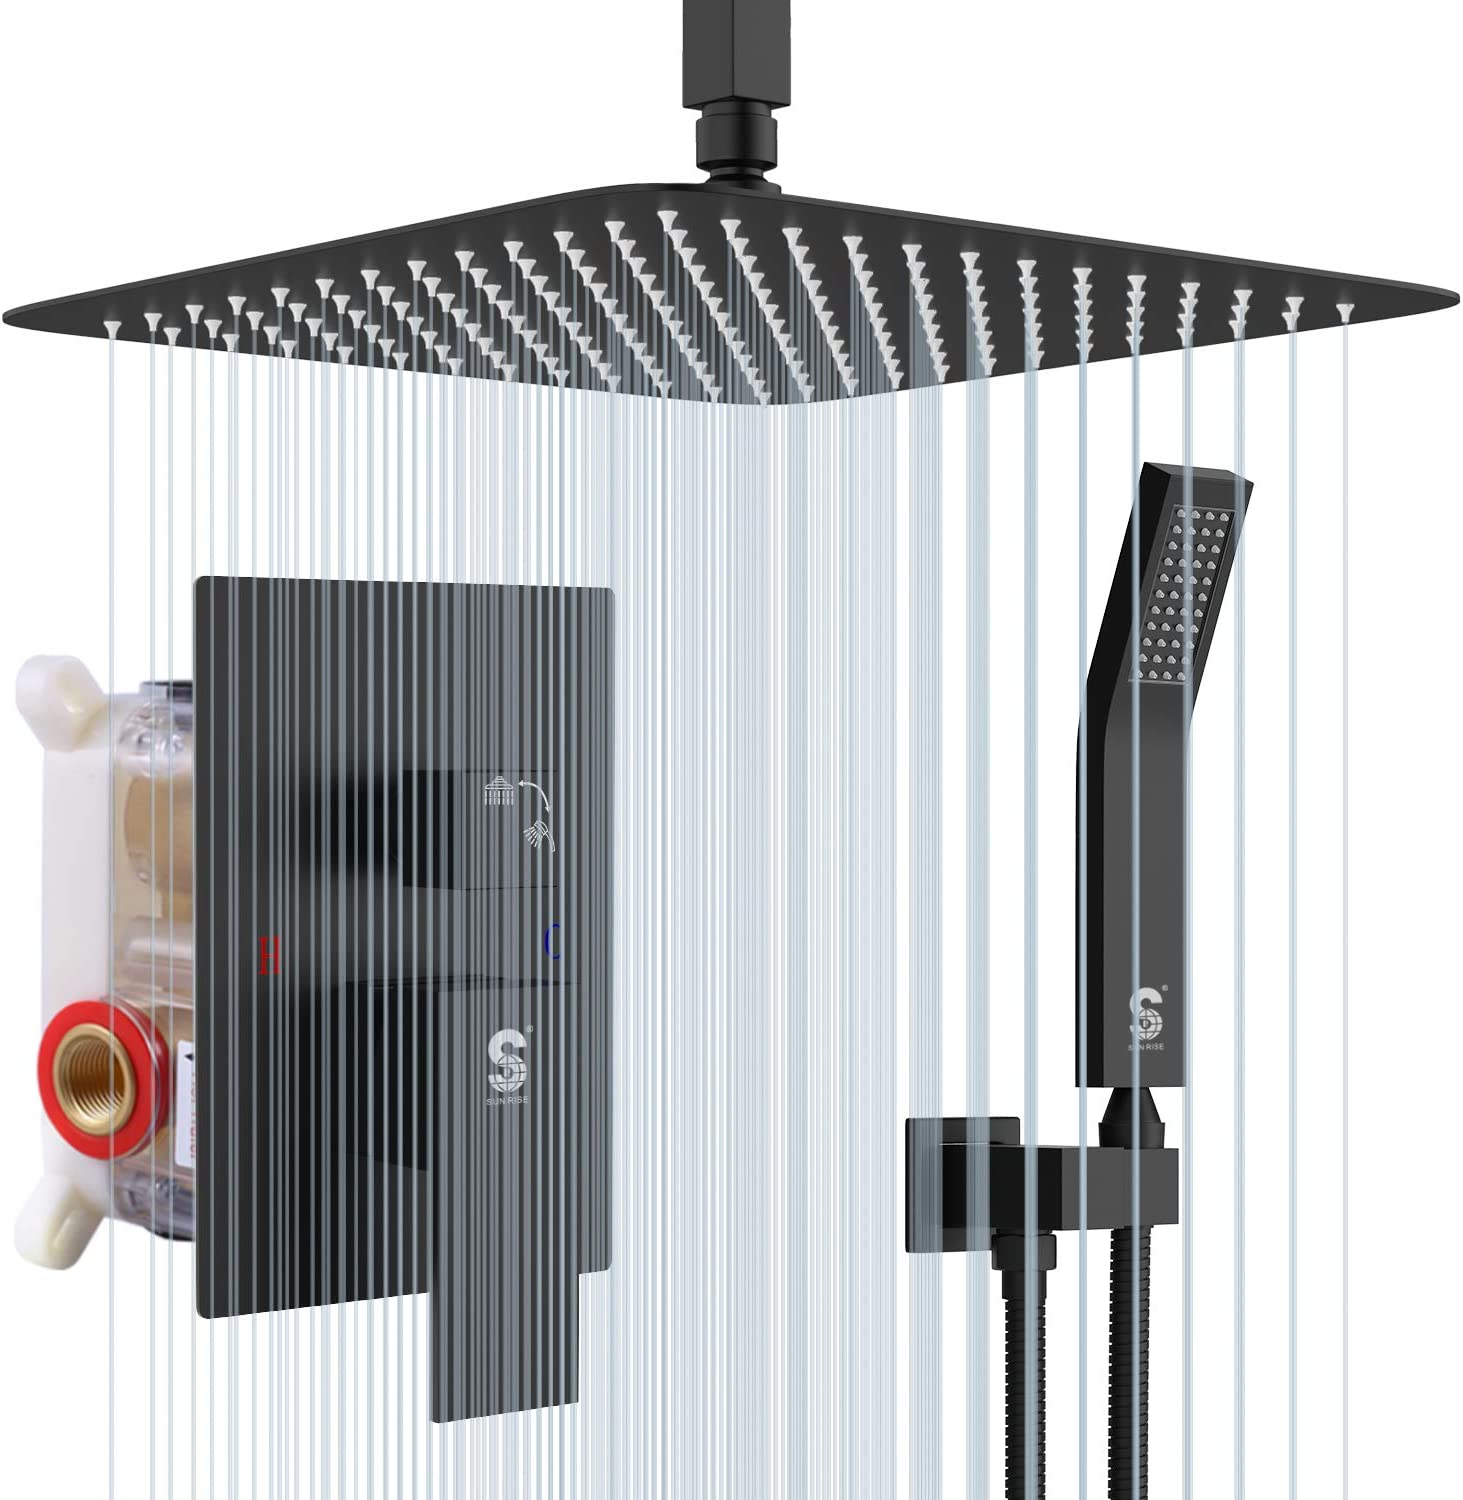 SR SUN RISE 12 Inch Ceiling Mount Matte Black Shower System Bathroom Luxury Rain Mixer Shower Combo Set Ceiling Rainfall Shower Head System (Contain Shower Faucet Rough-in Valve Body and Trim)